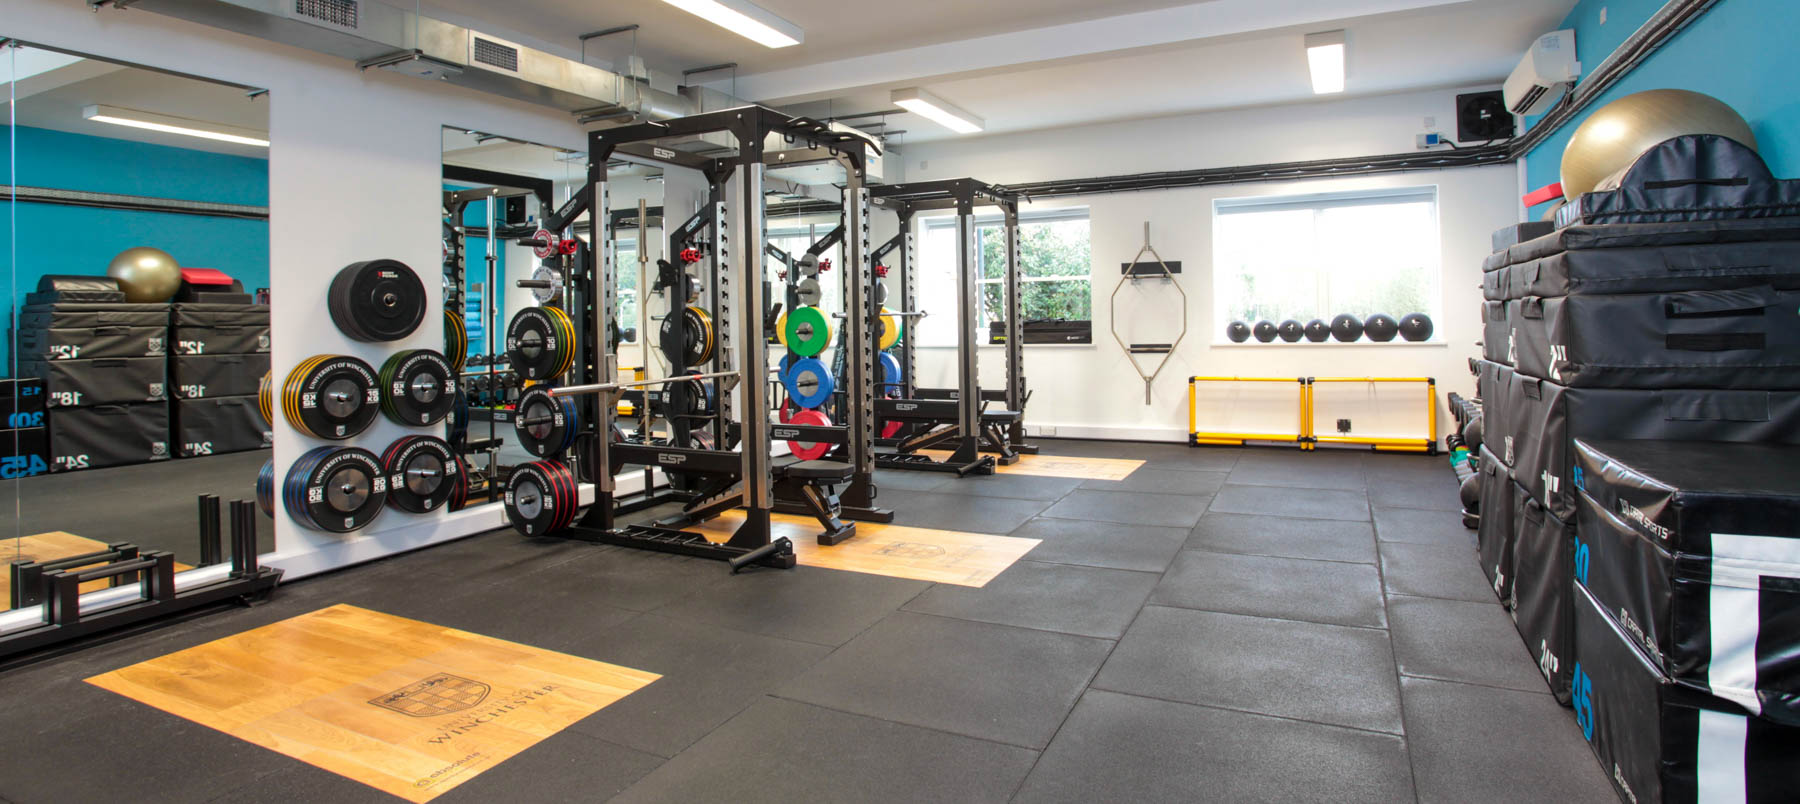 Room filled with gym equipment including weights and mats